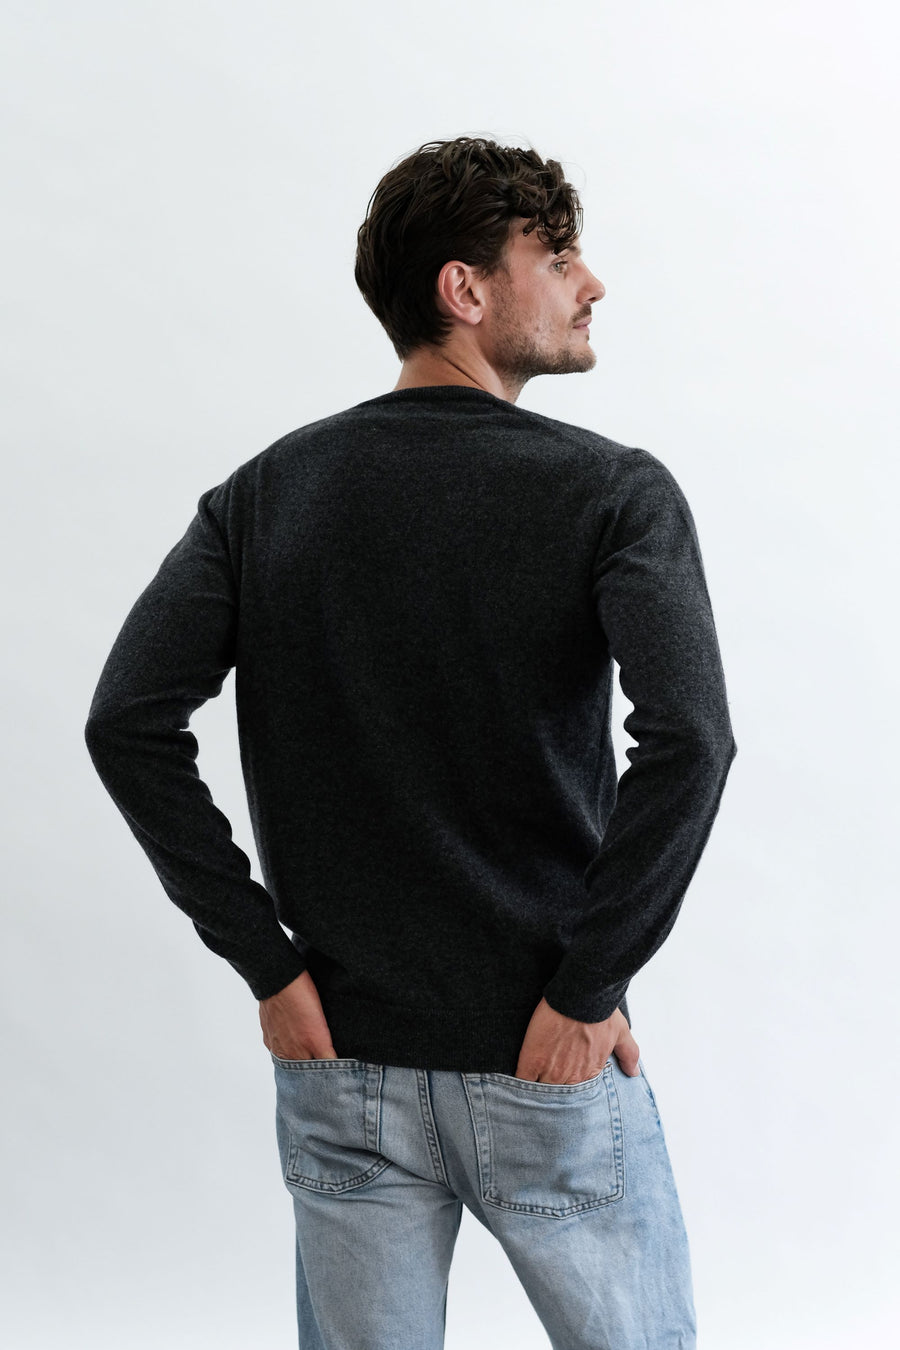 Cashmere Sweater v2.0